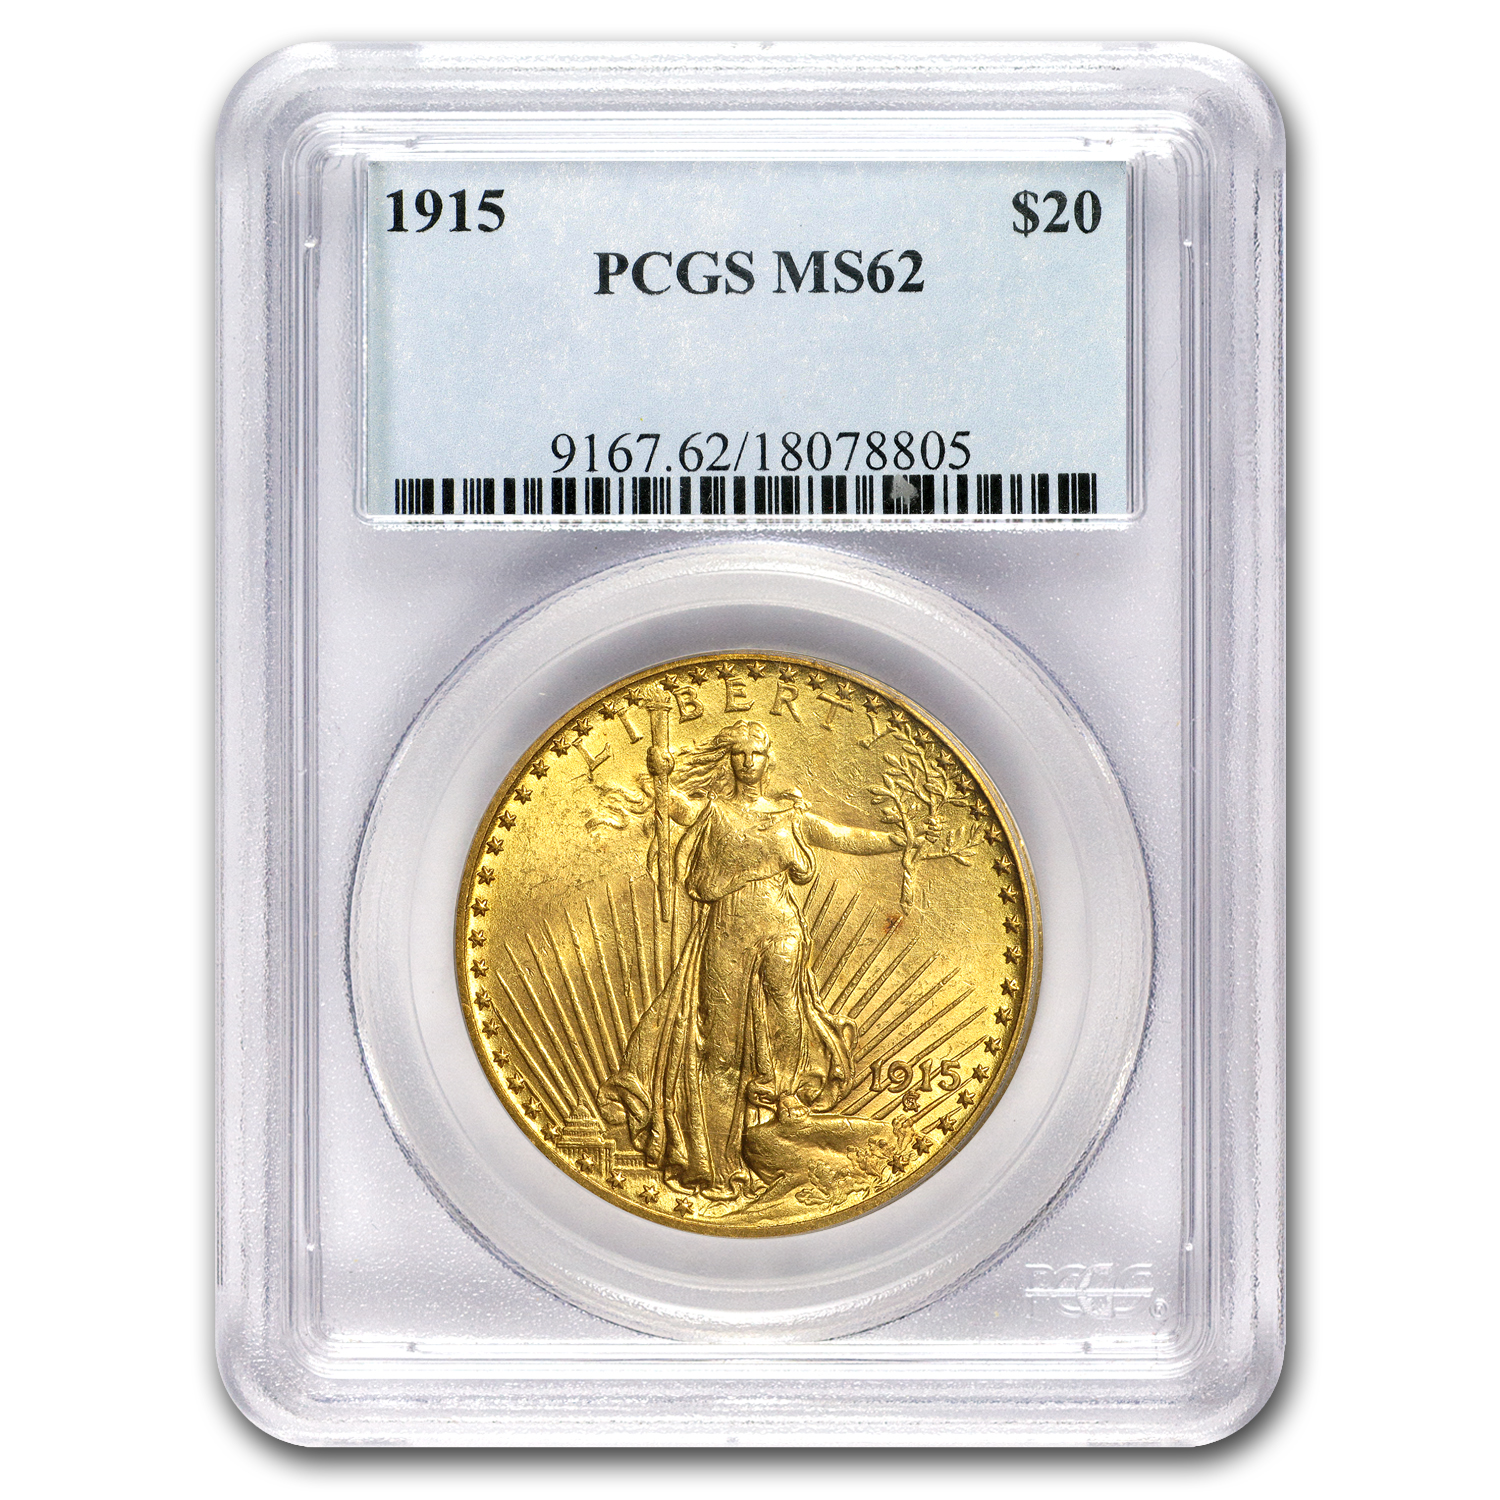 1915 $20 St. Gaudens Gold Double Eagle MS-62 PCGS